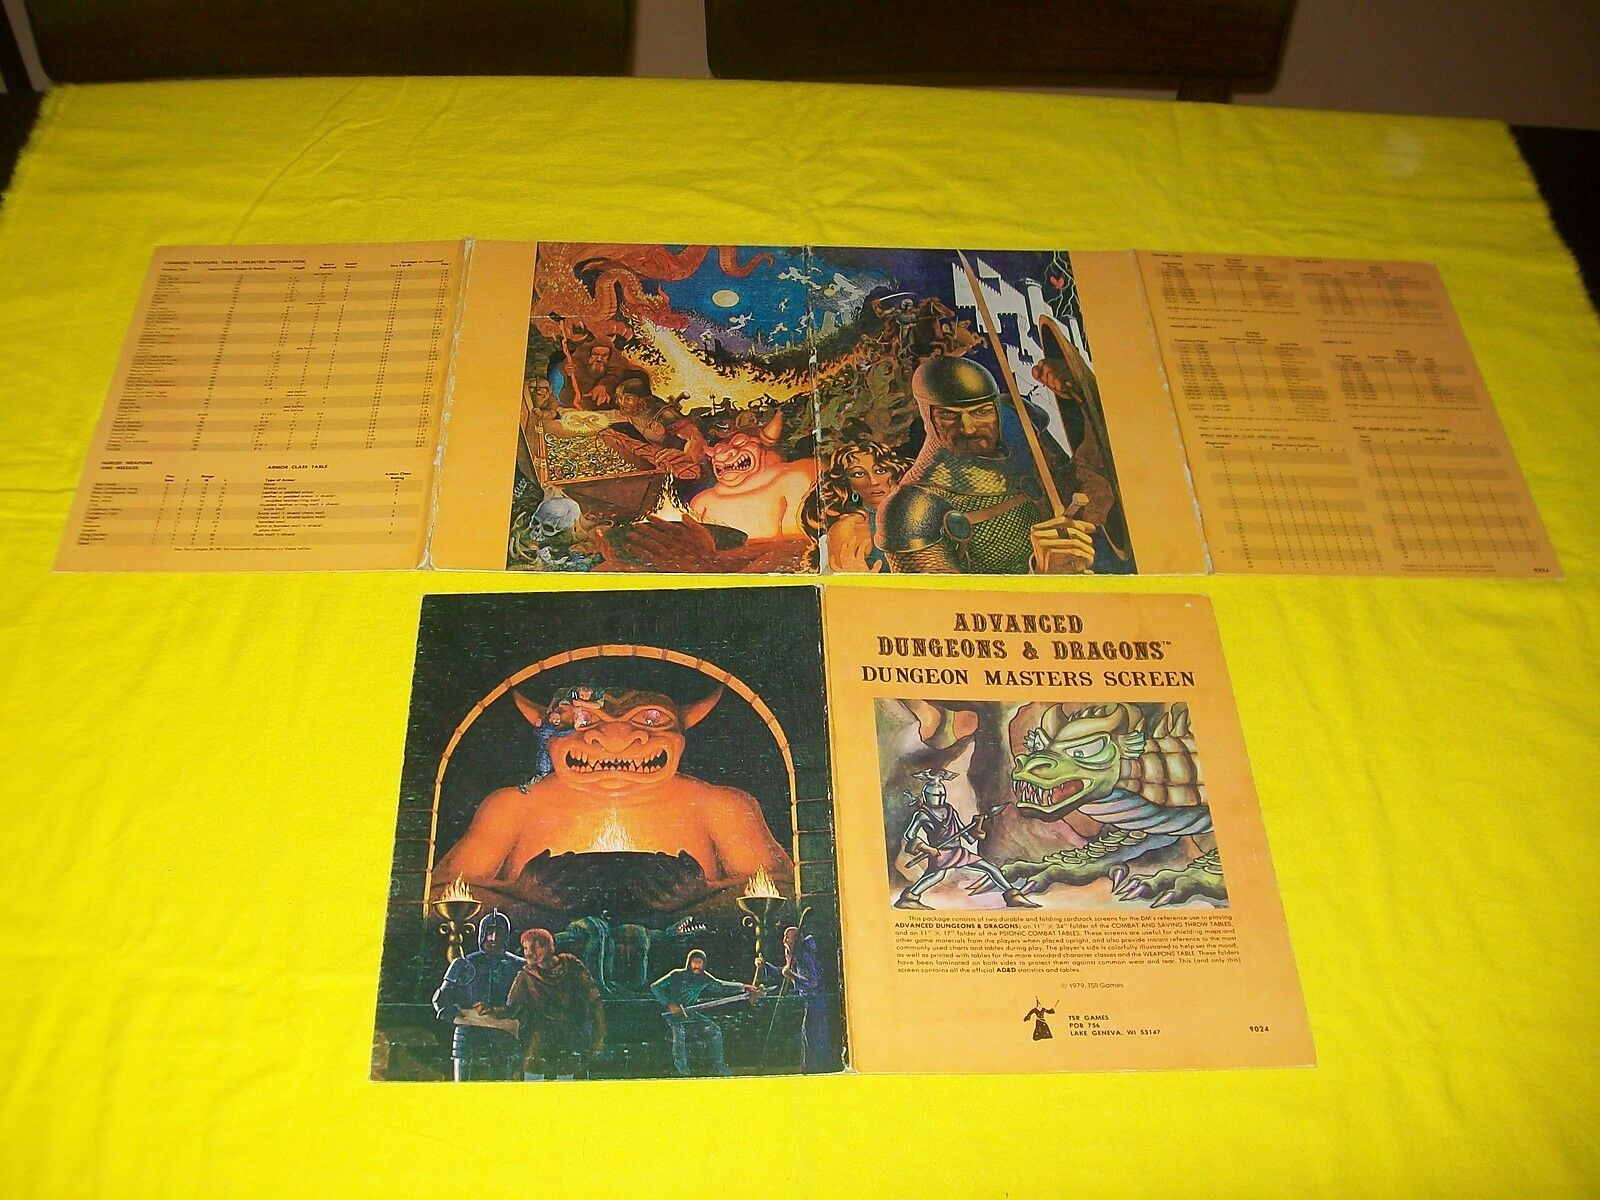 Dungeon Masters pantalla Dungeons & Dragons AD&D TSR 9024 - 14 - 2 4 Juego De Panel